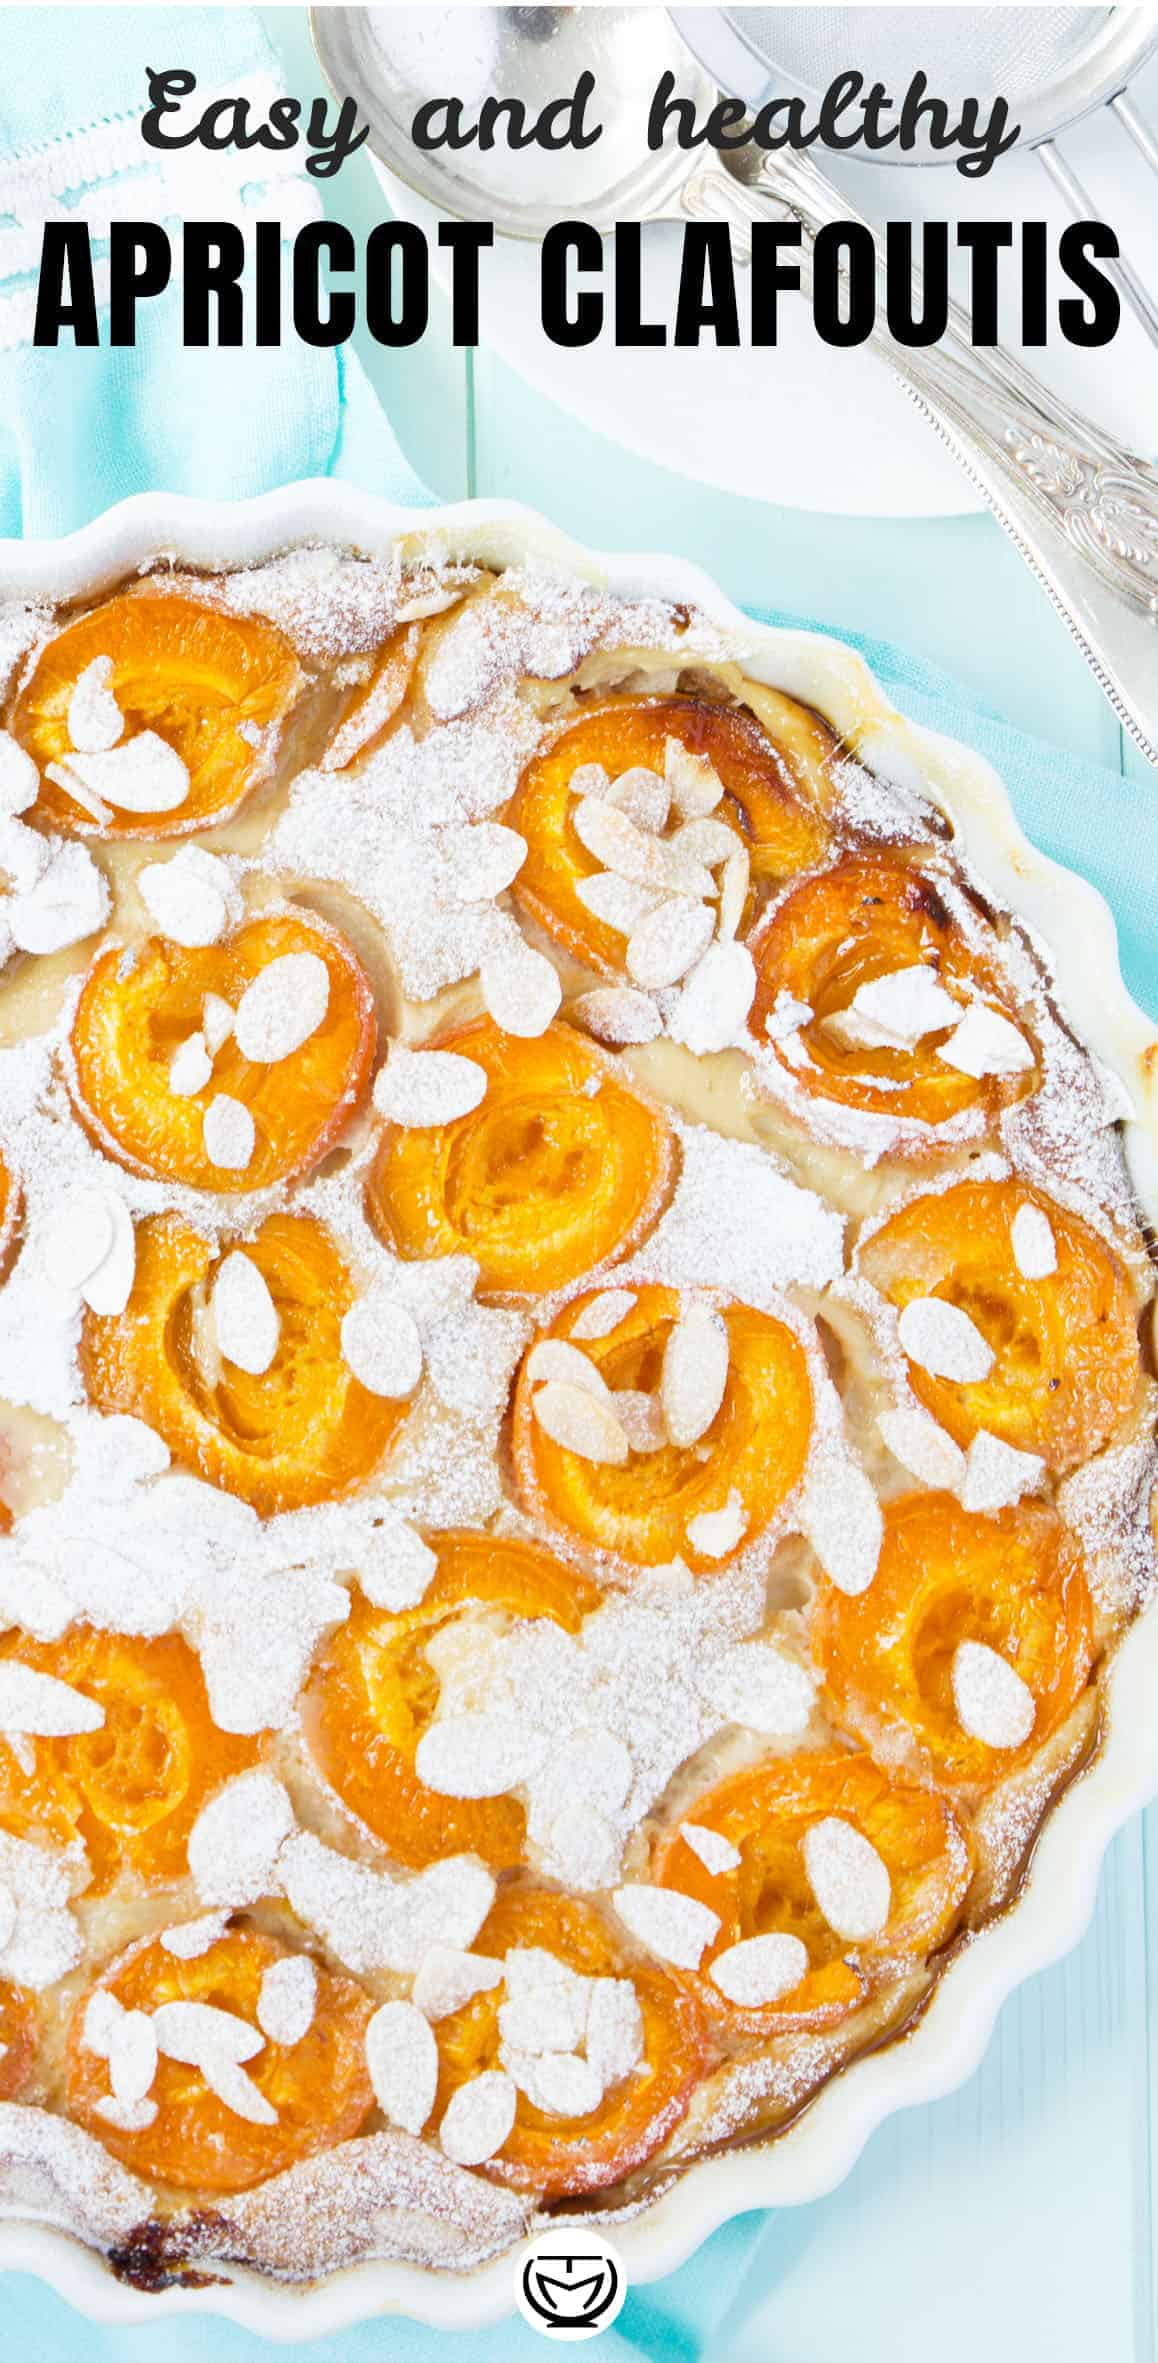 easy and healthy apricot clafoutis